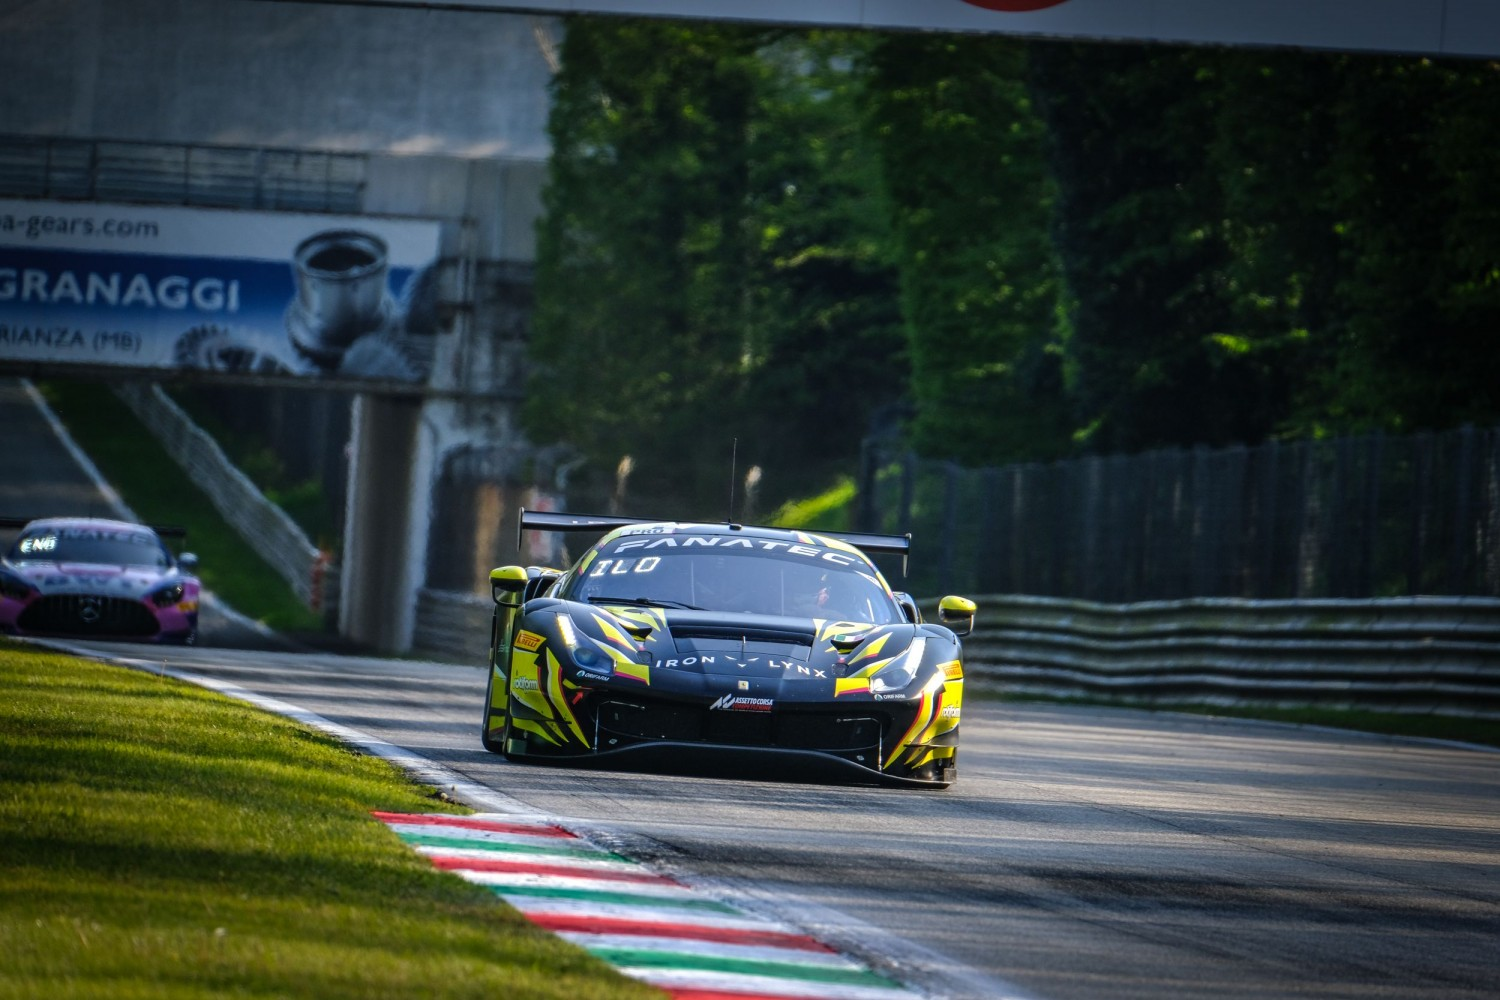 Fuoco flies as Iron Lynx Ferrari tops opening Monza practice